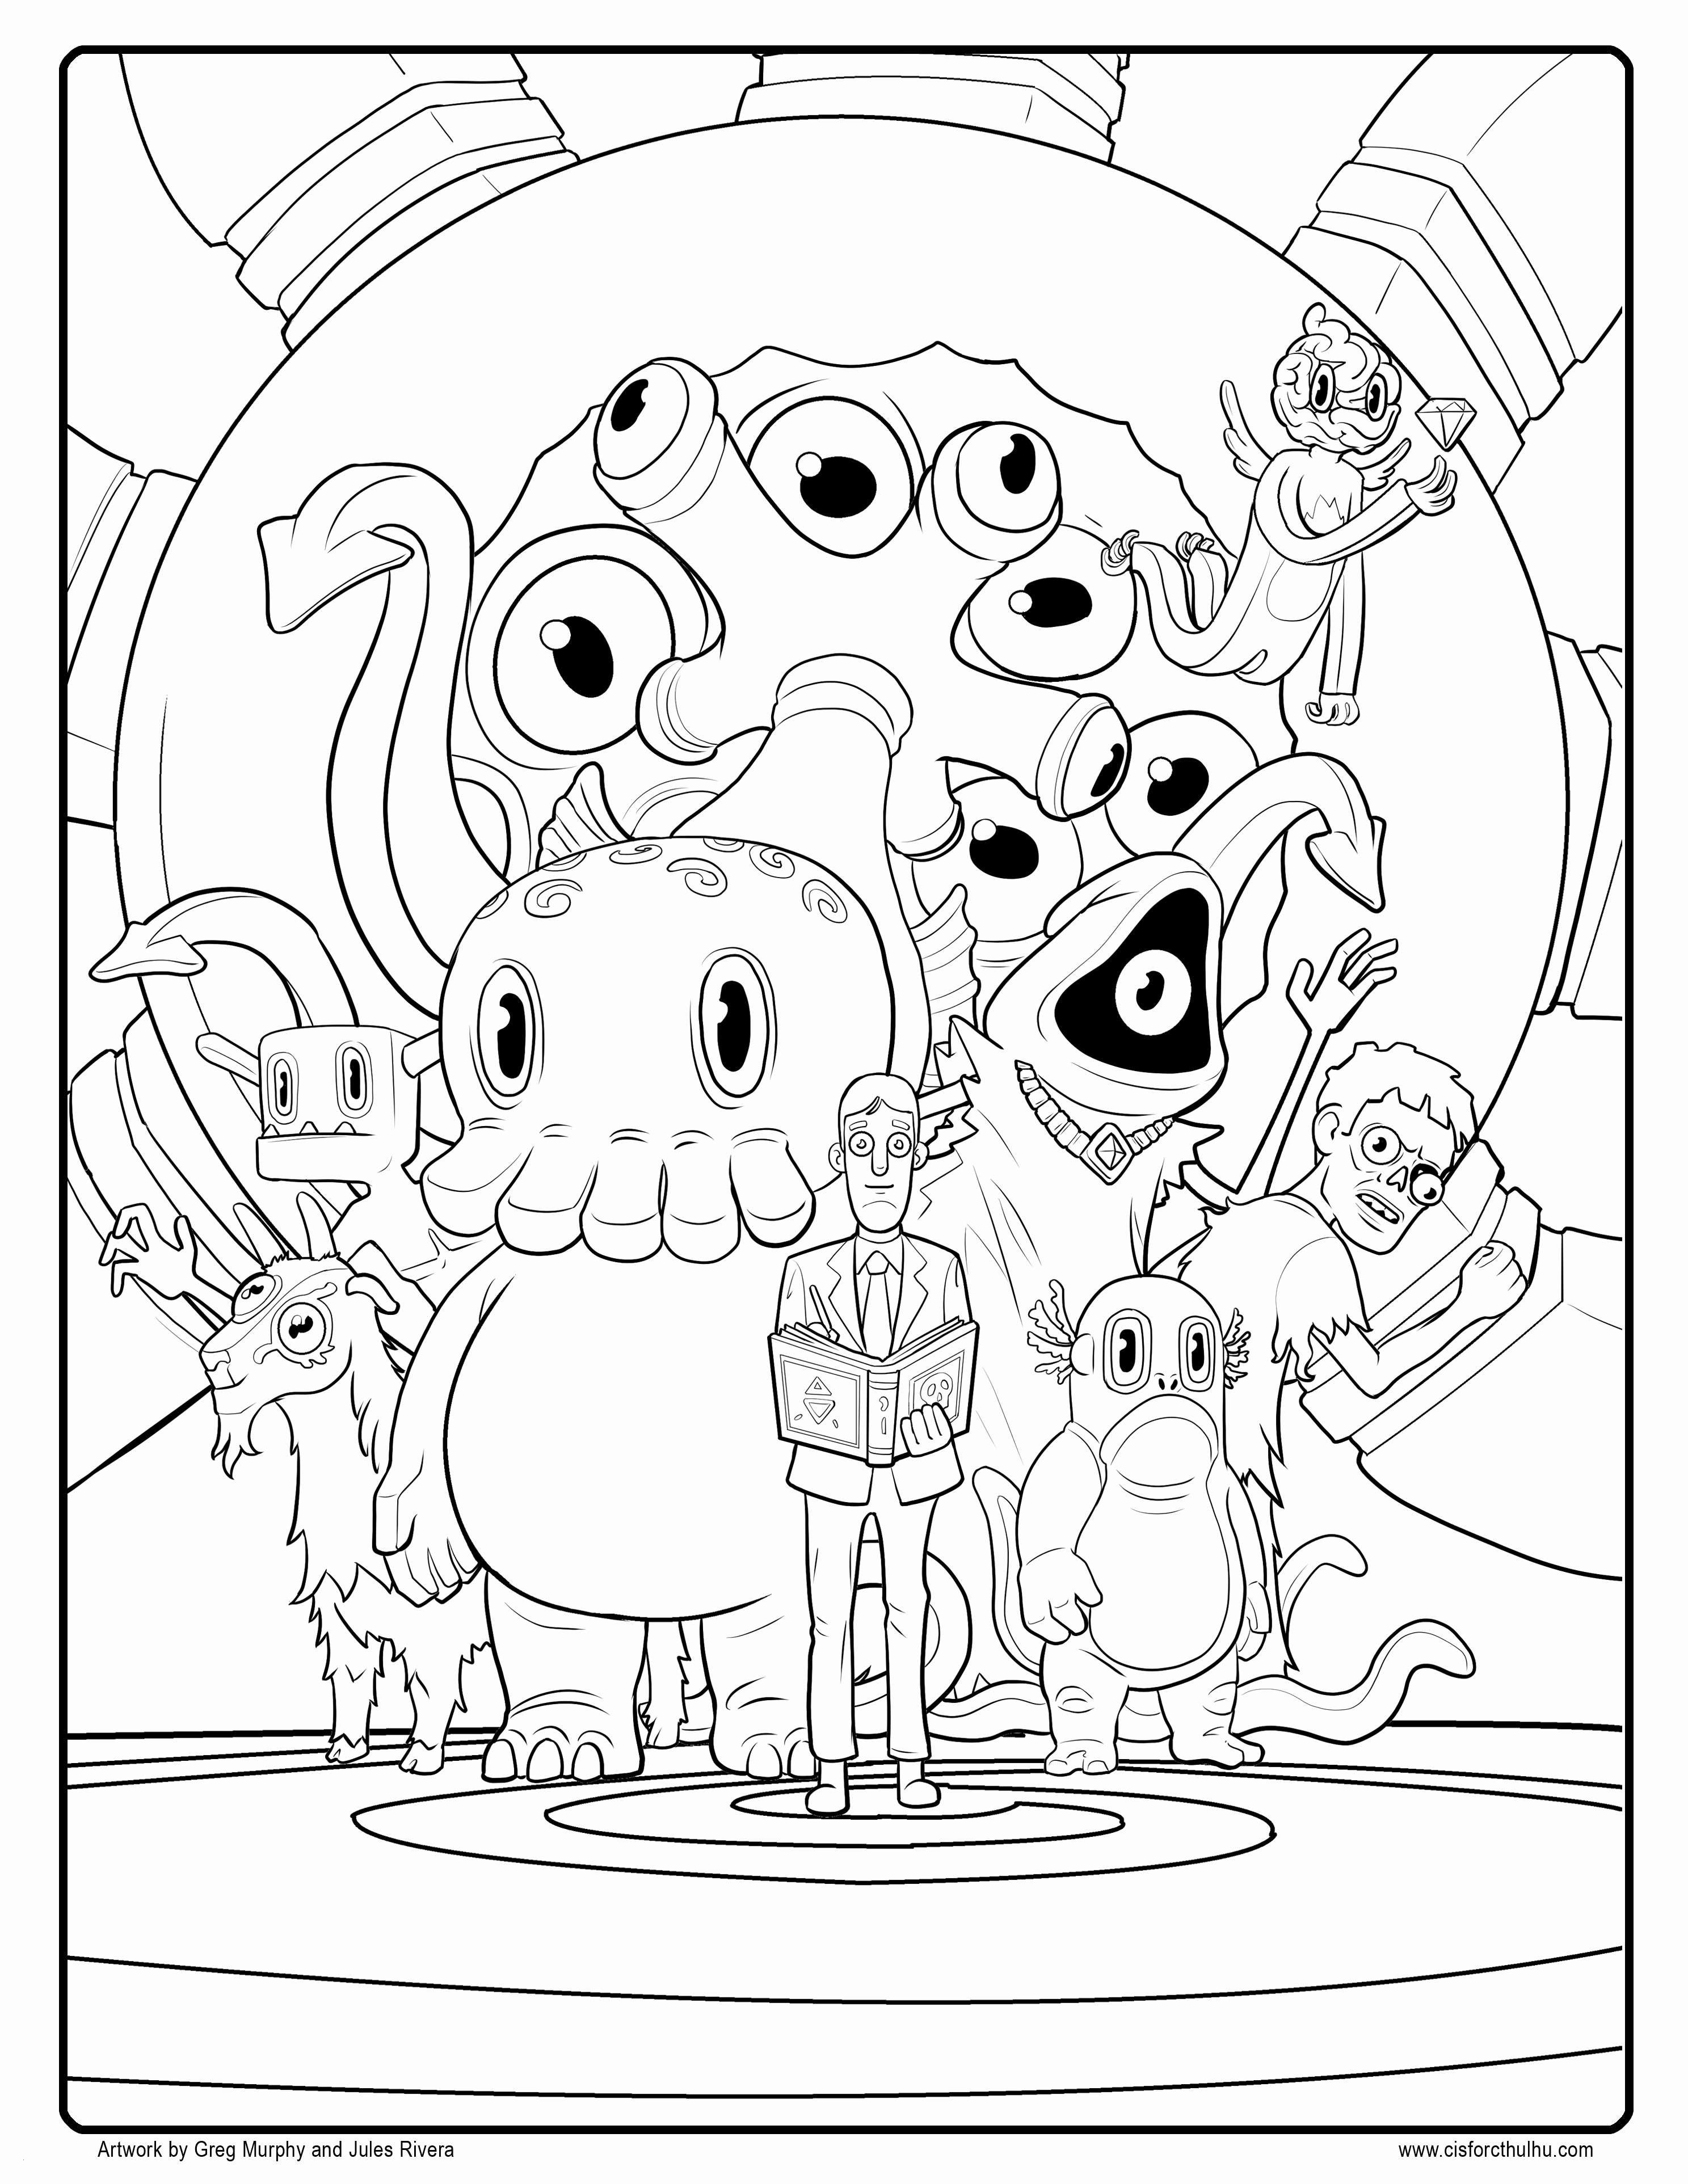 Africa Coloring Pages  Printable 9i - Save it to your computer